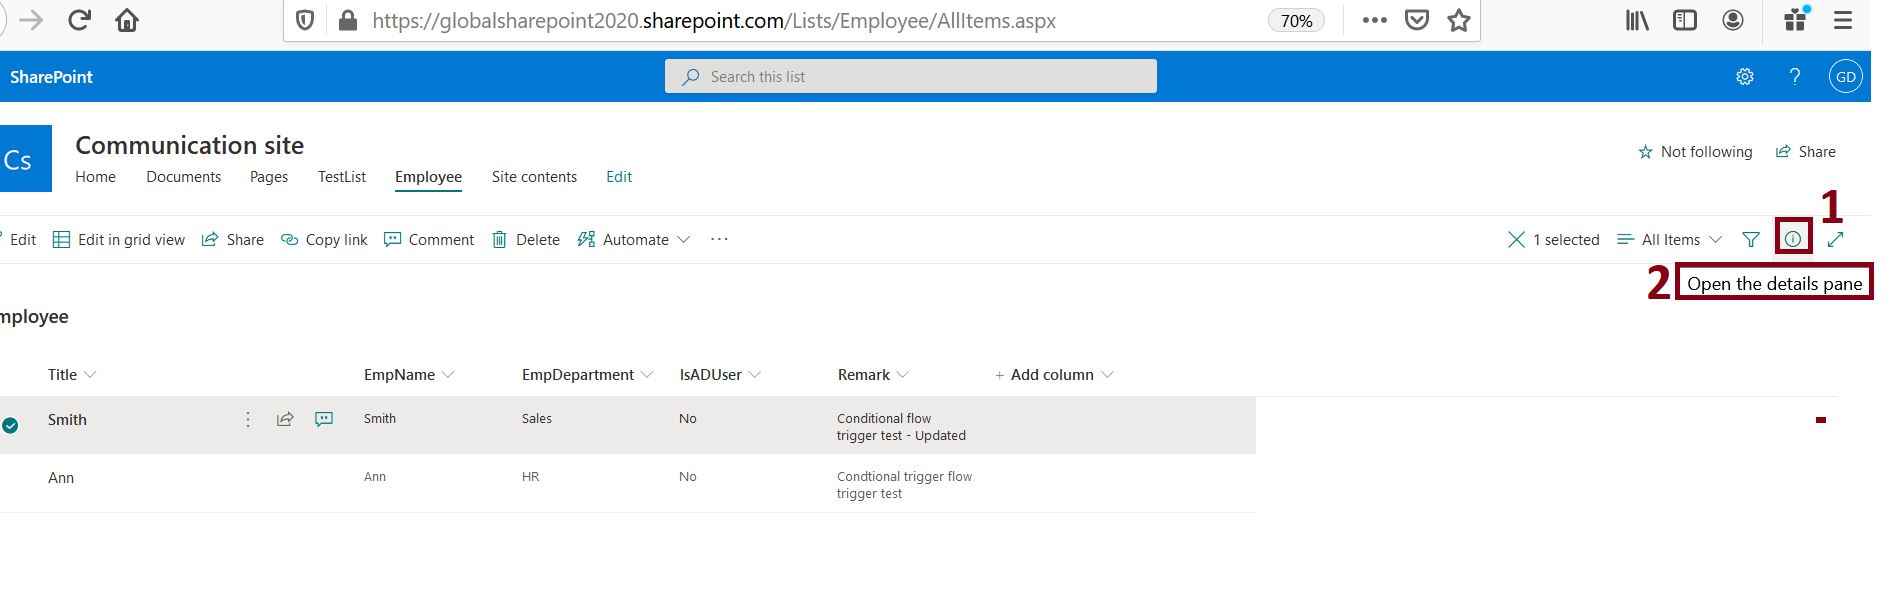 Open details pane in modern SharePoint Online list